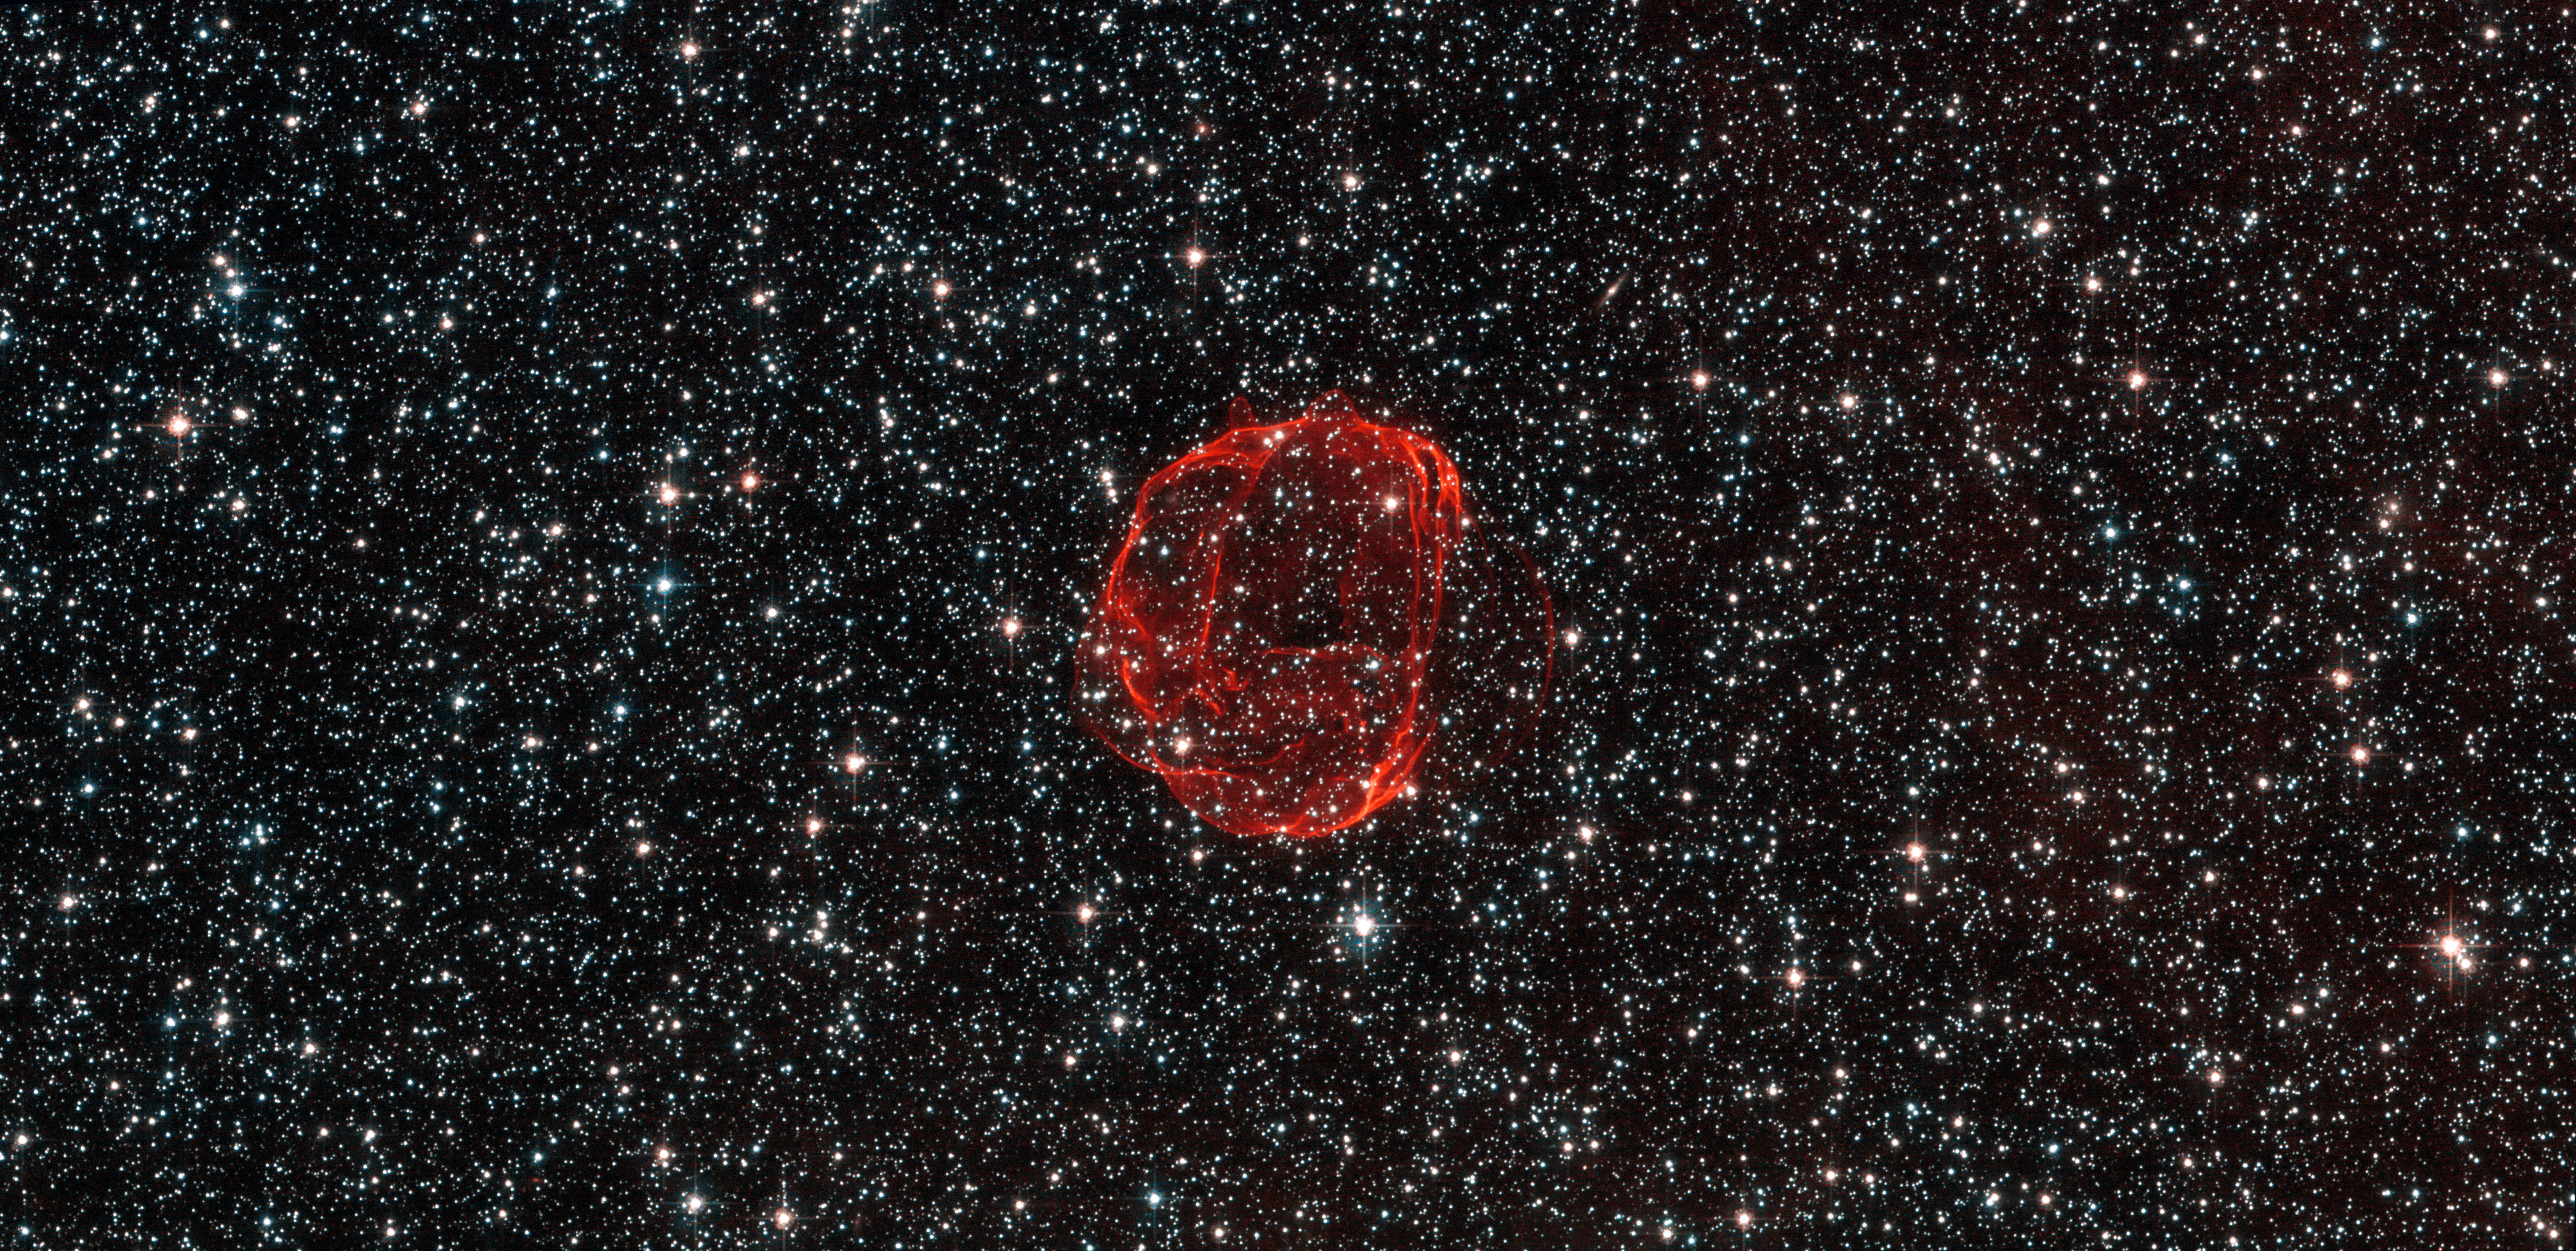 the remains of a star gone supernova 3995 x 1940